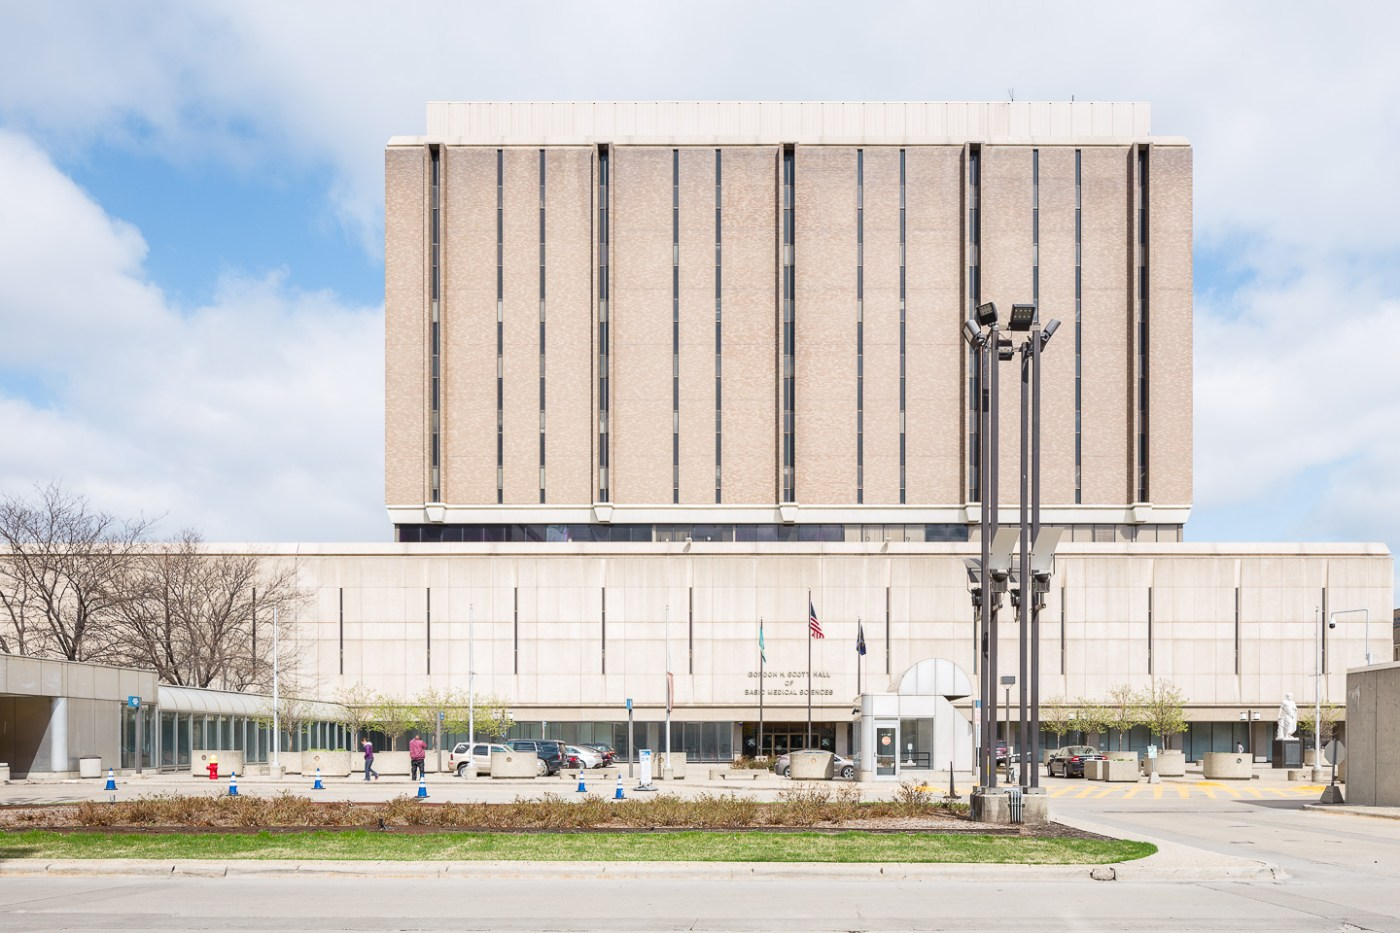 Gordon H. Scott Hall of Basic Medical Sciences by Giffels & Rossetti. Photo by Jason R. Woods.